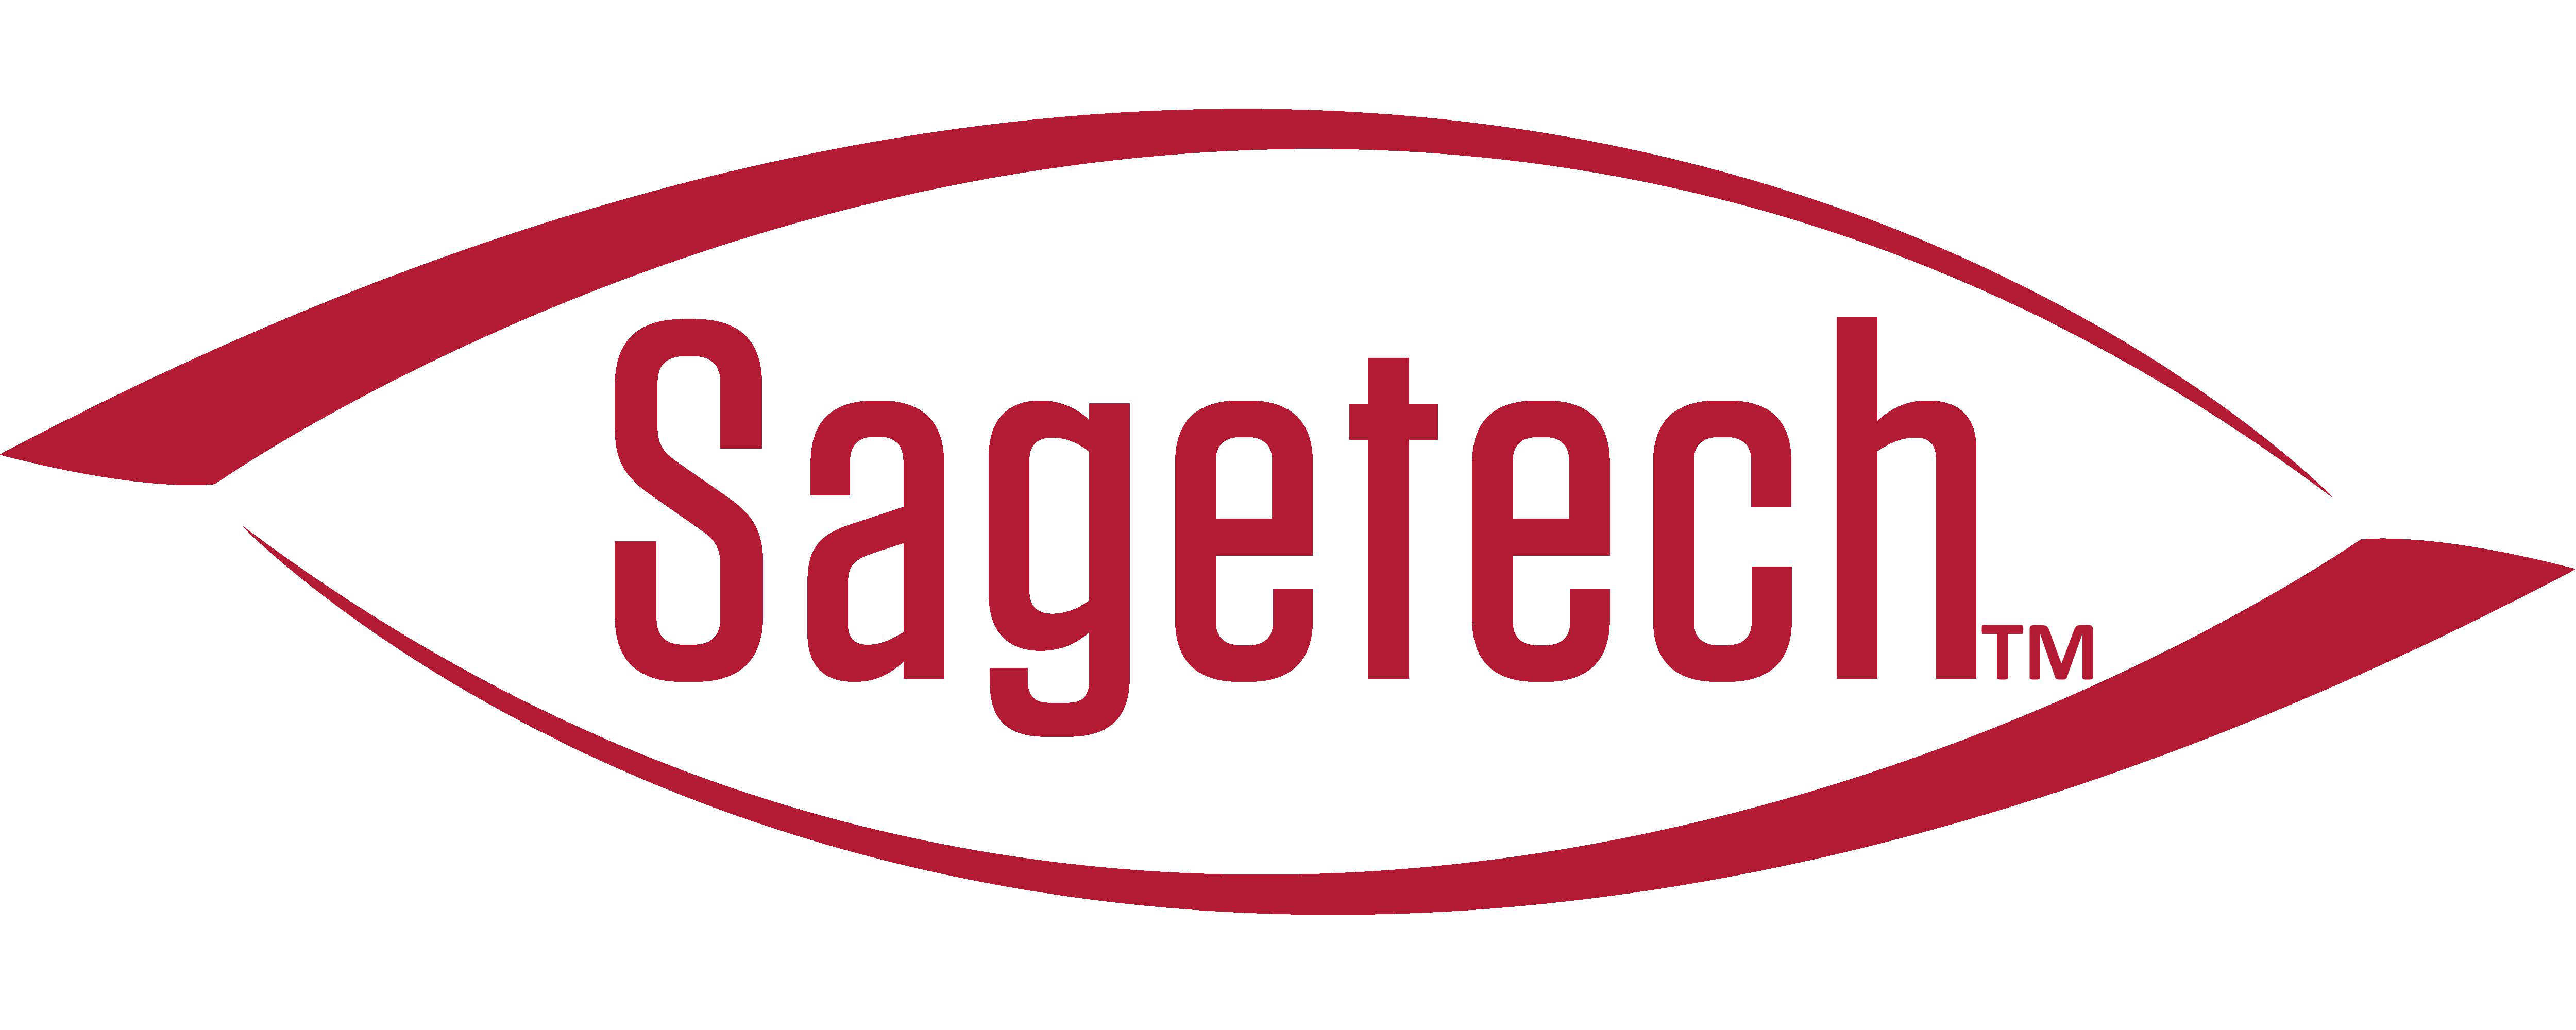 Dod issues aims certification to sagetech transponder media 1betcityfo Gallery